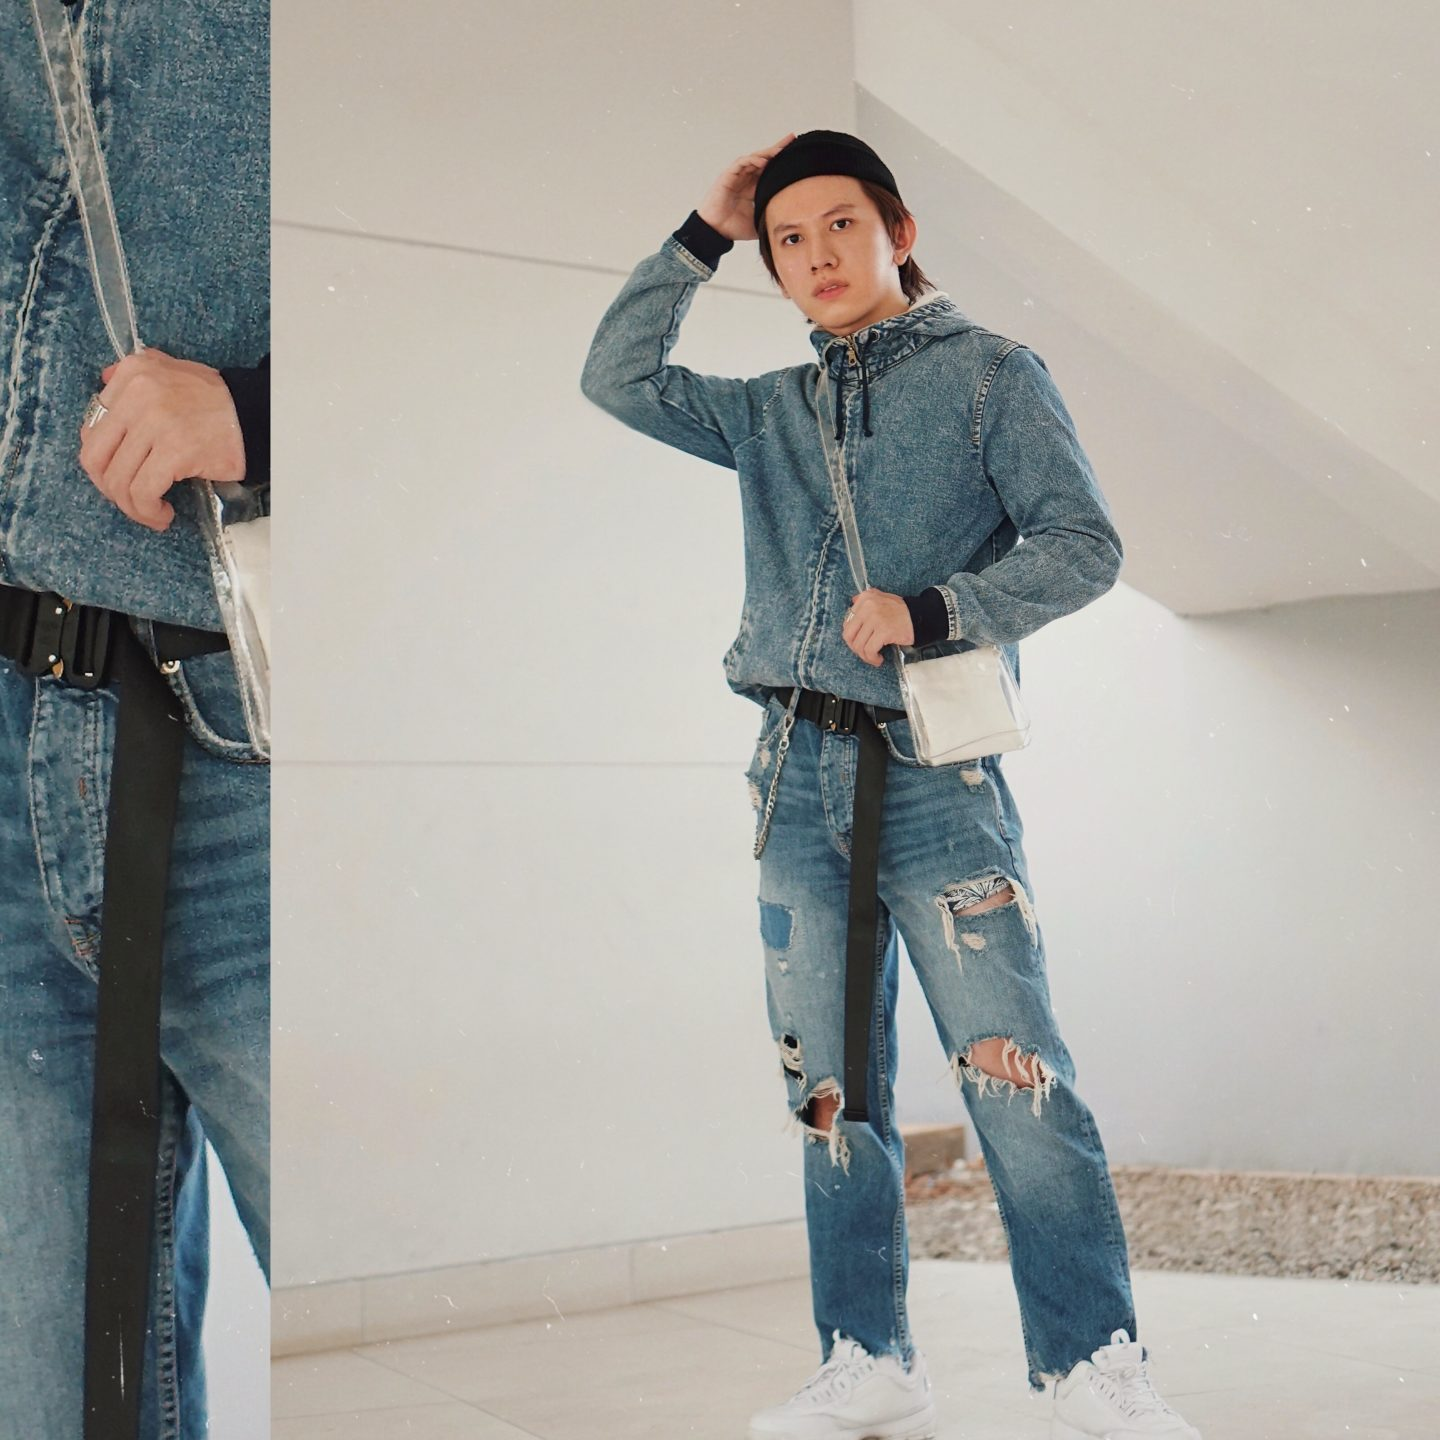 HOW TO STEP UP YOUR DENIM LOOK!